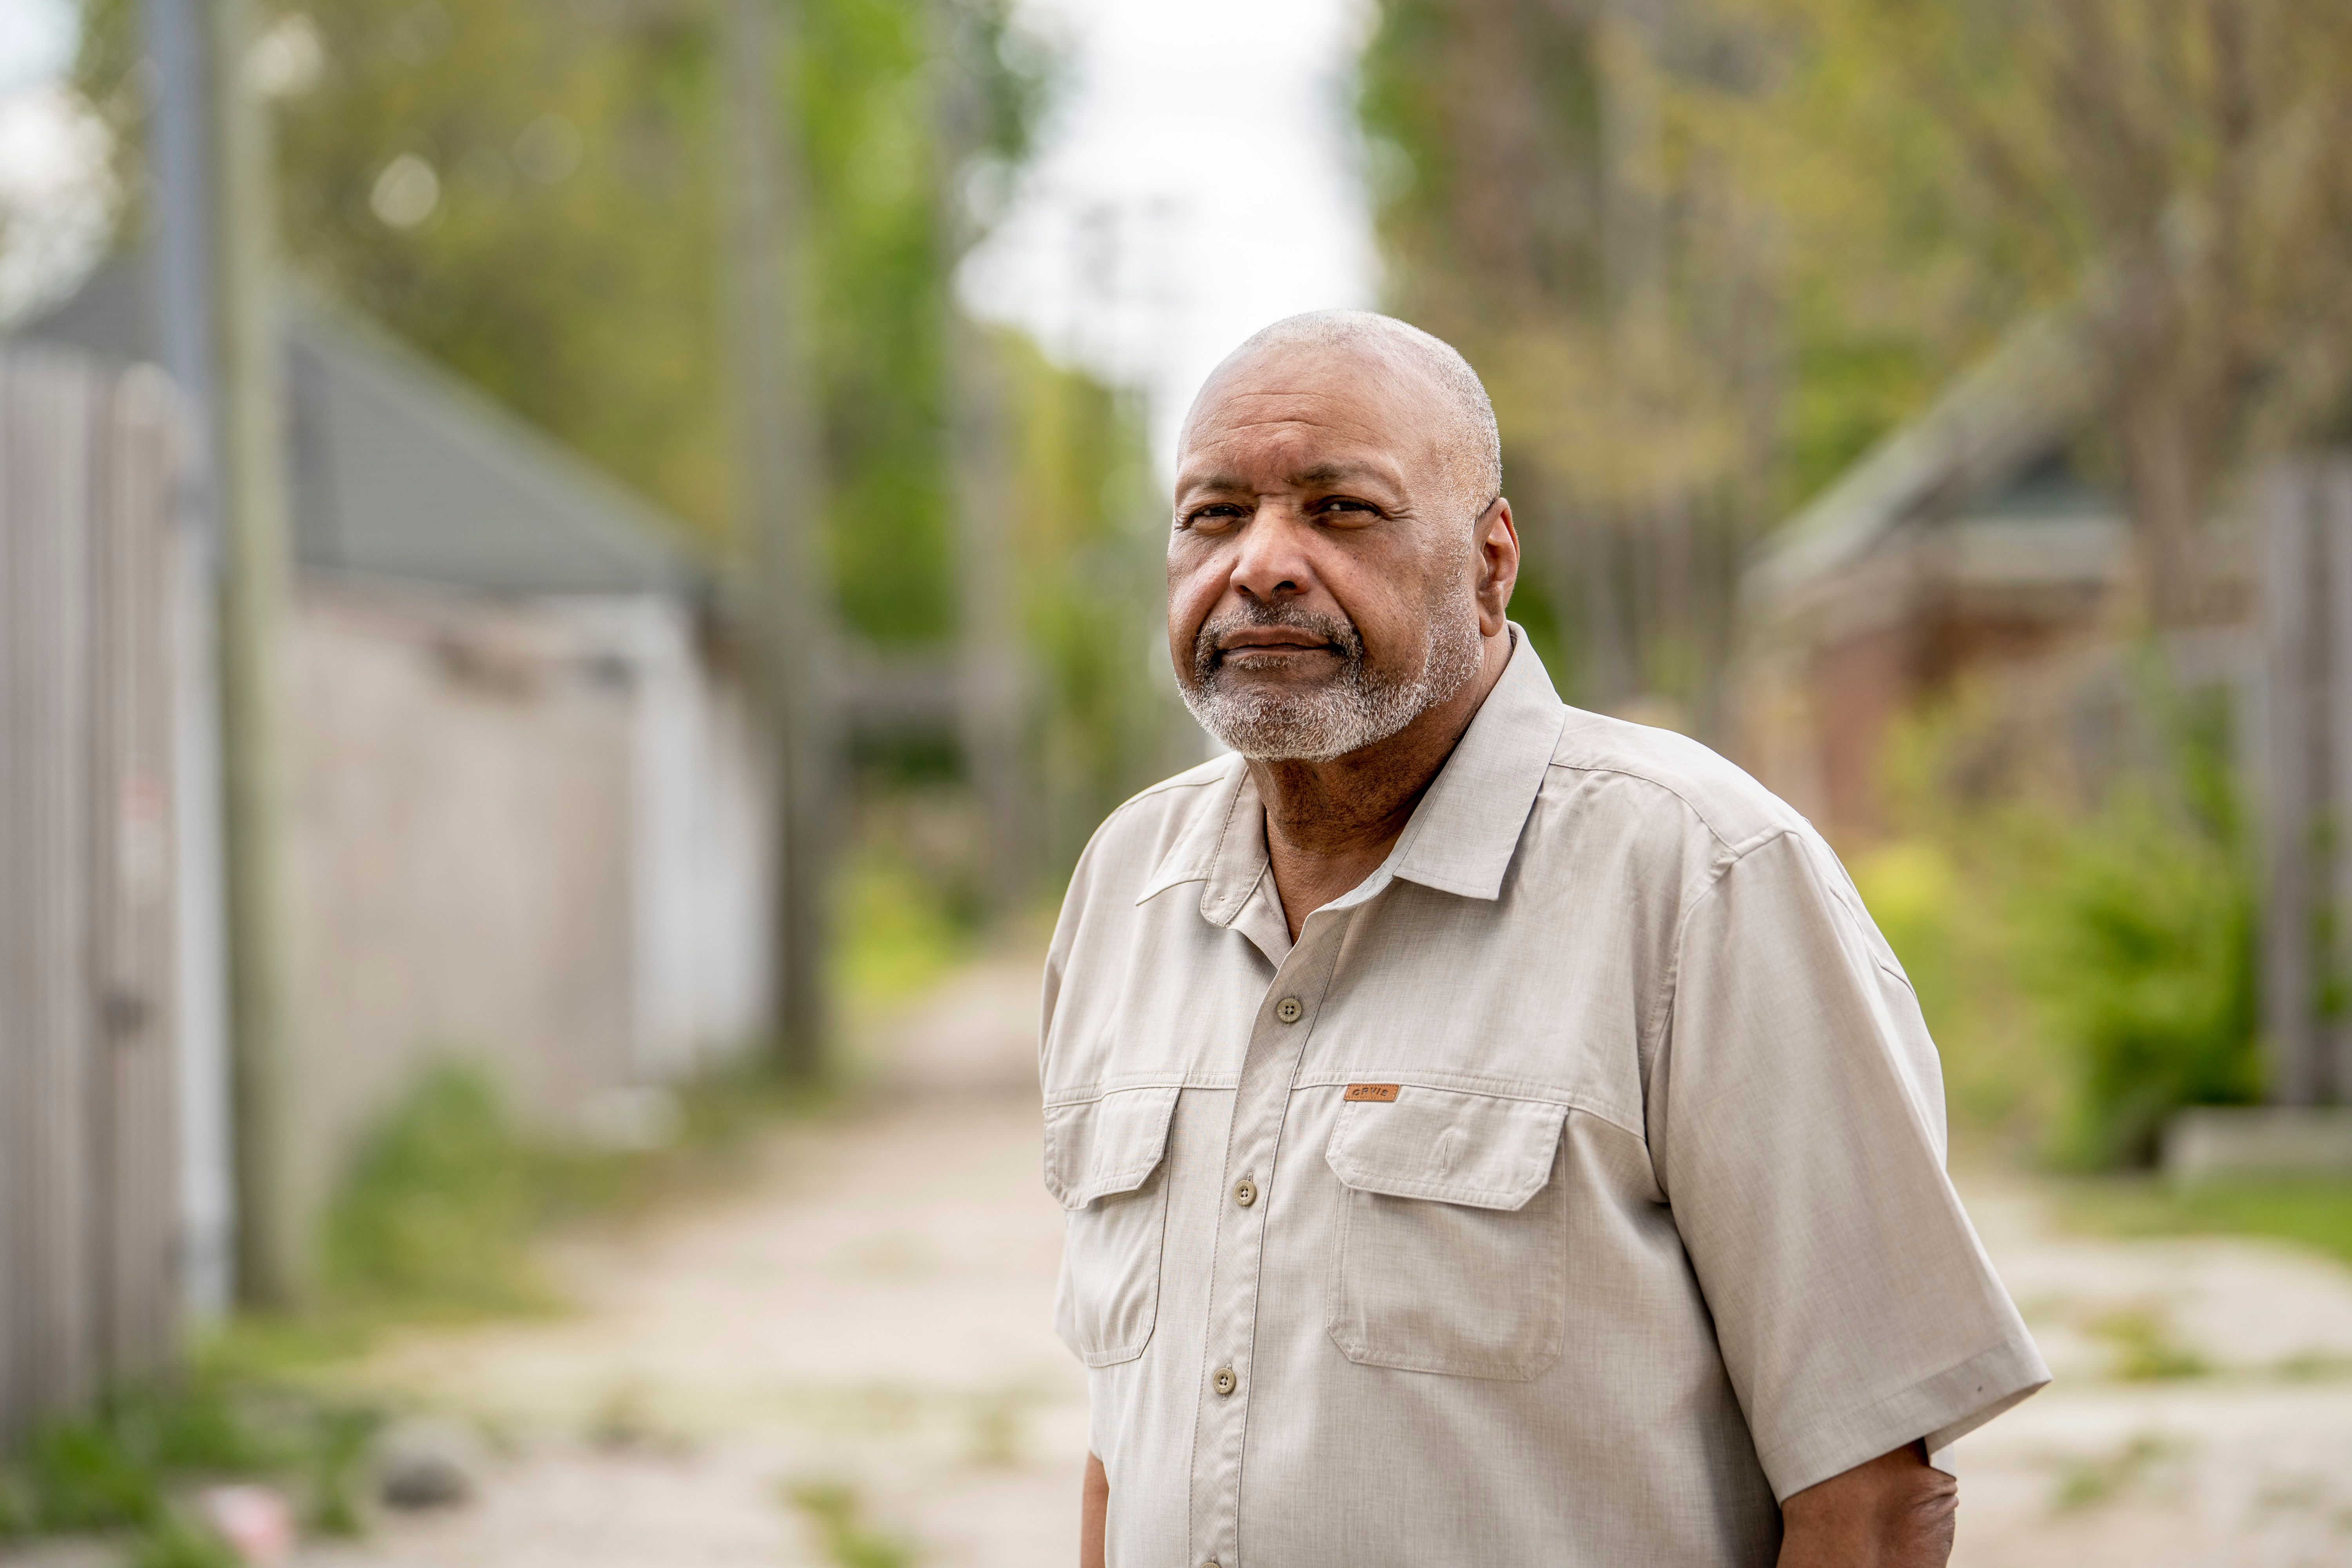 Phil Talbert in one of the neighborhoods where he did community outreach for the COVID-19 vaccine in Detroit, May 14, 2021. T